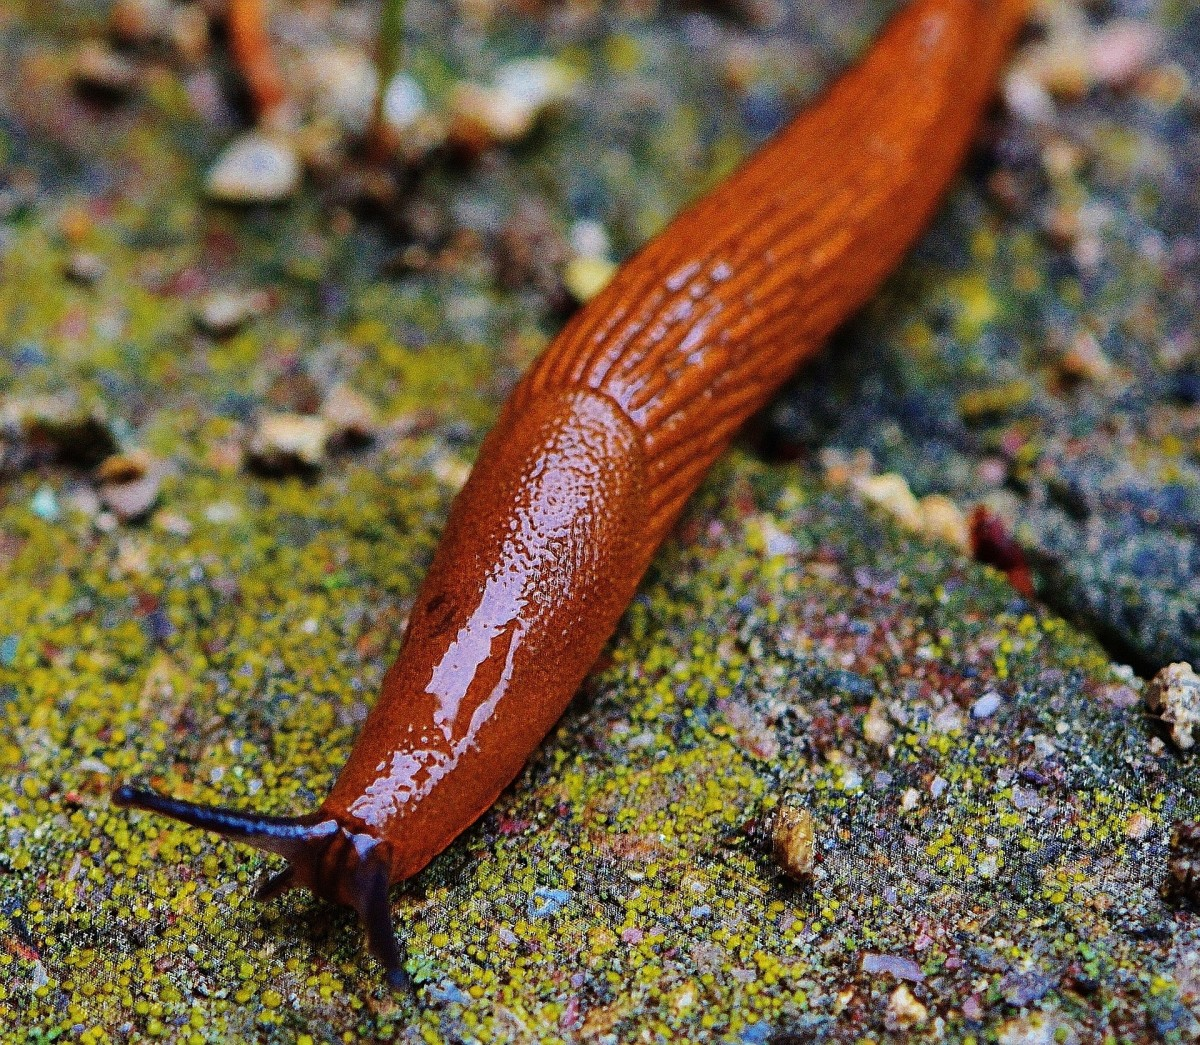 Get advice on caring for a pet slug, from housing to feeding to handling!